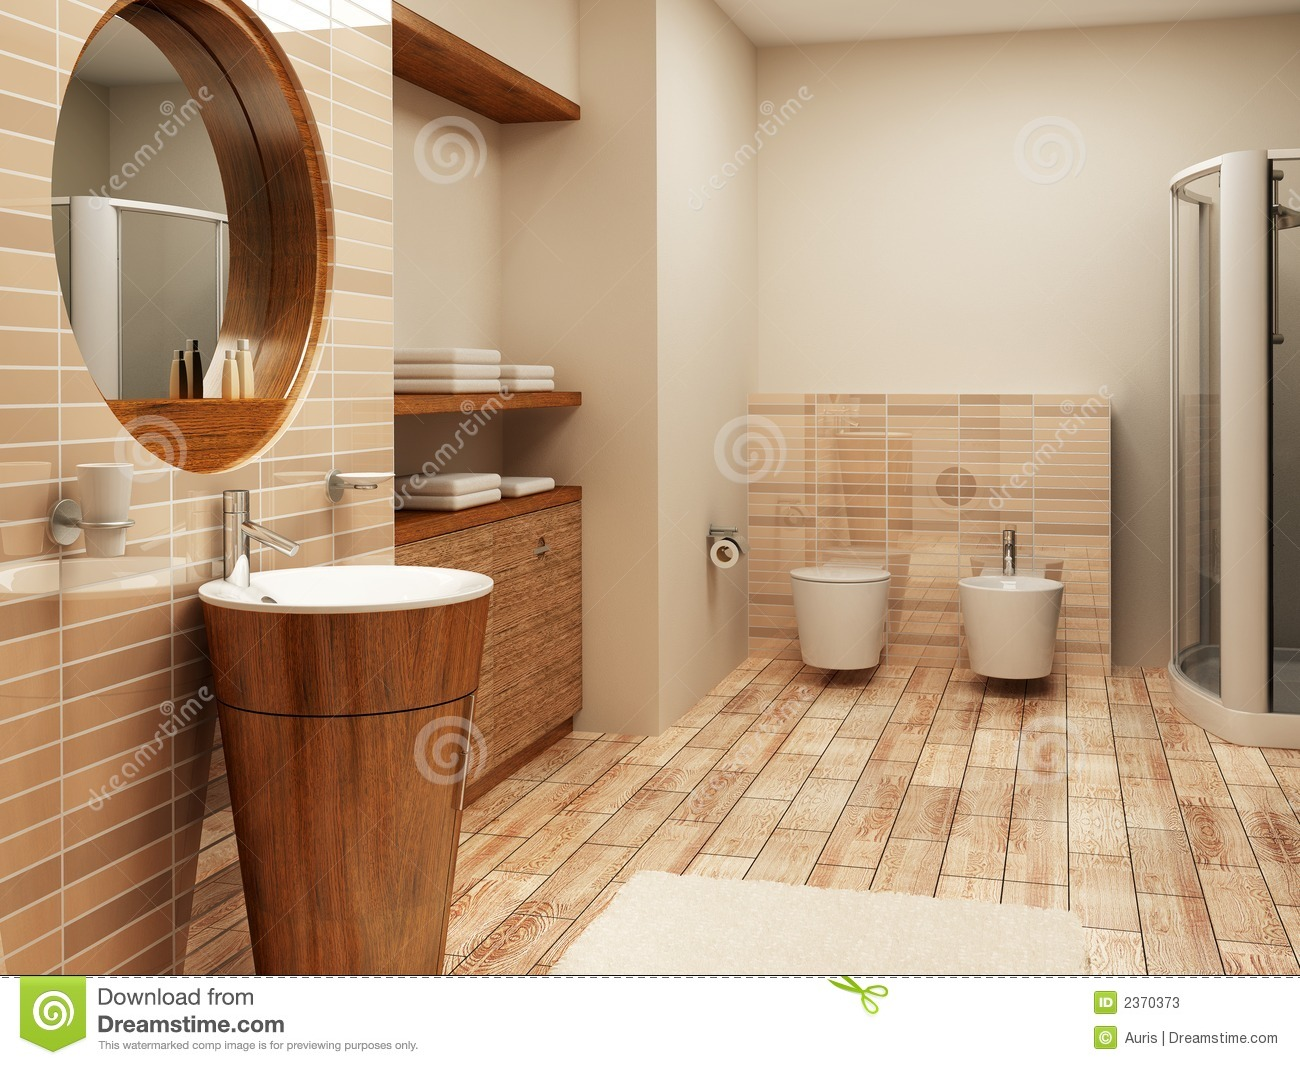 . Bathroom interior stock image  Image of bidet  modern   2370373